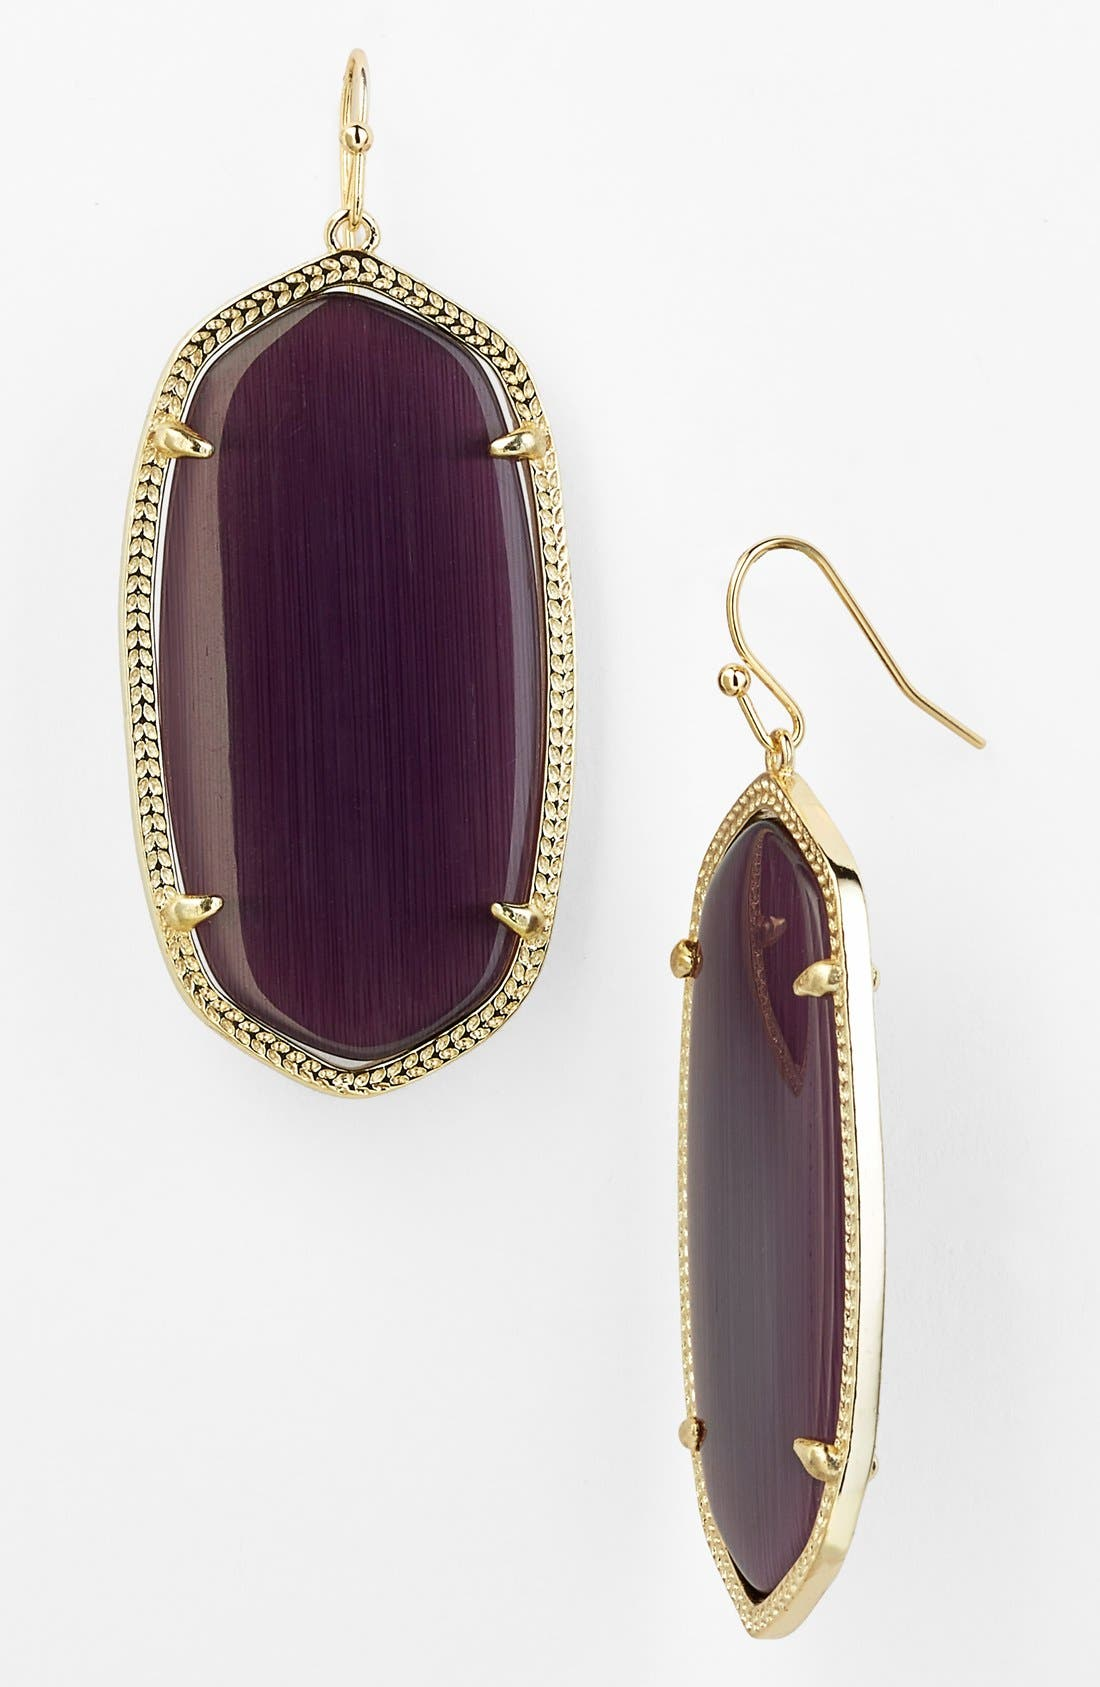 Danielle - Large Oval Statement Earrings,                             Main thumbnail 70, color,